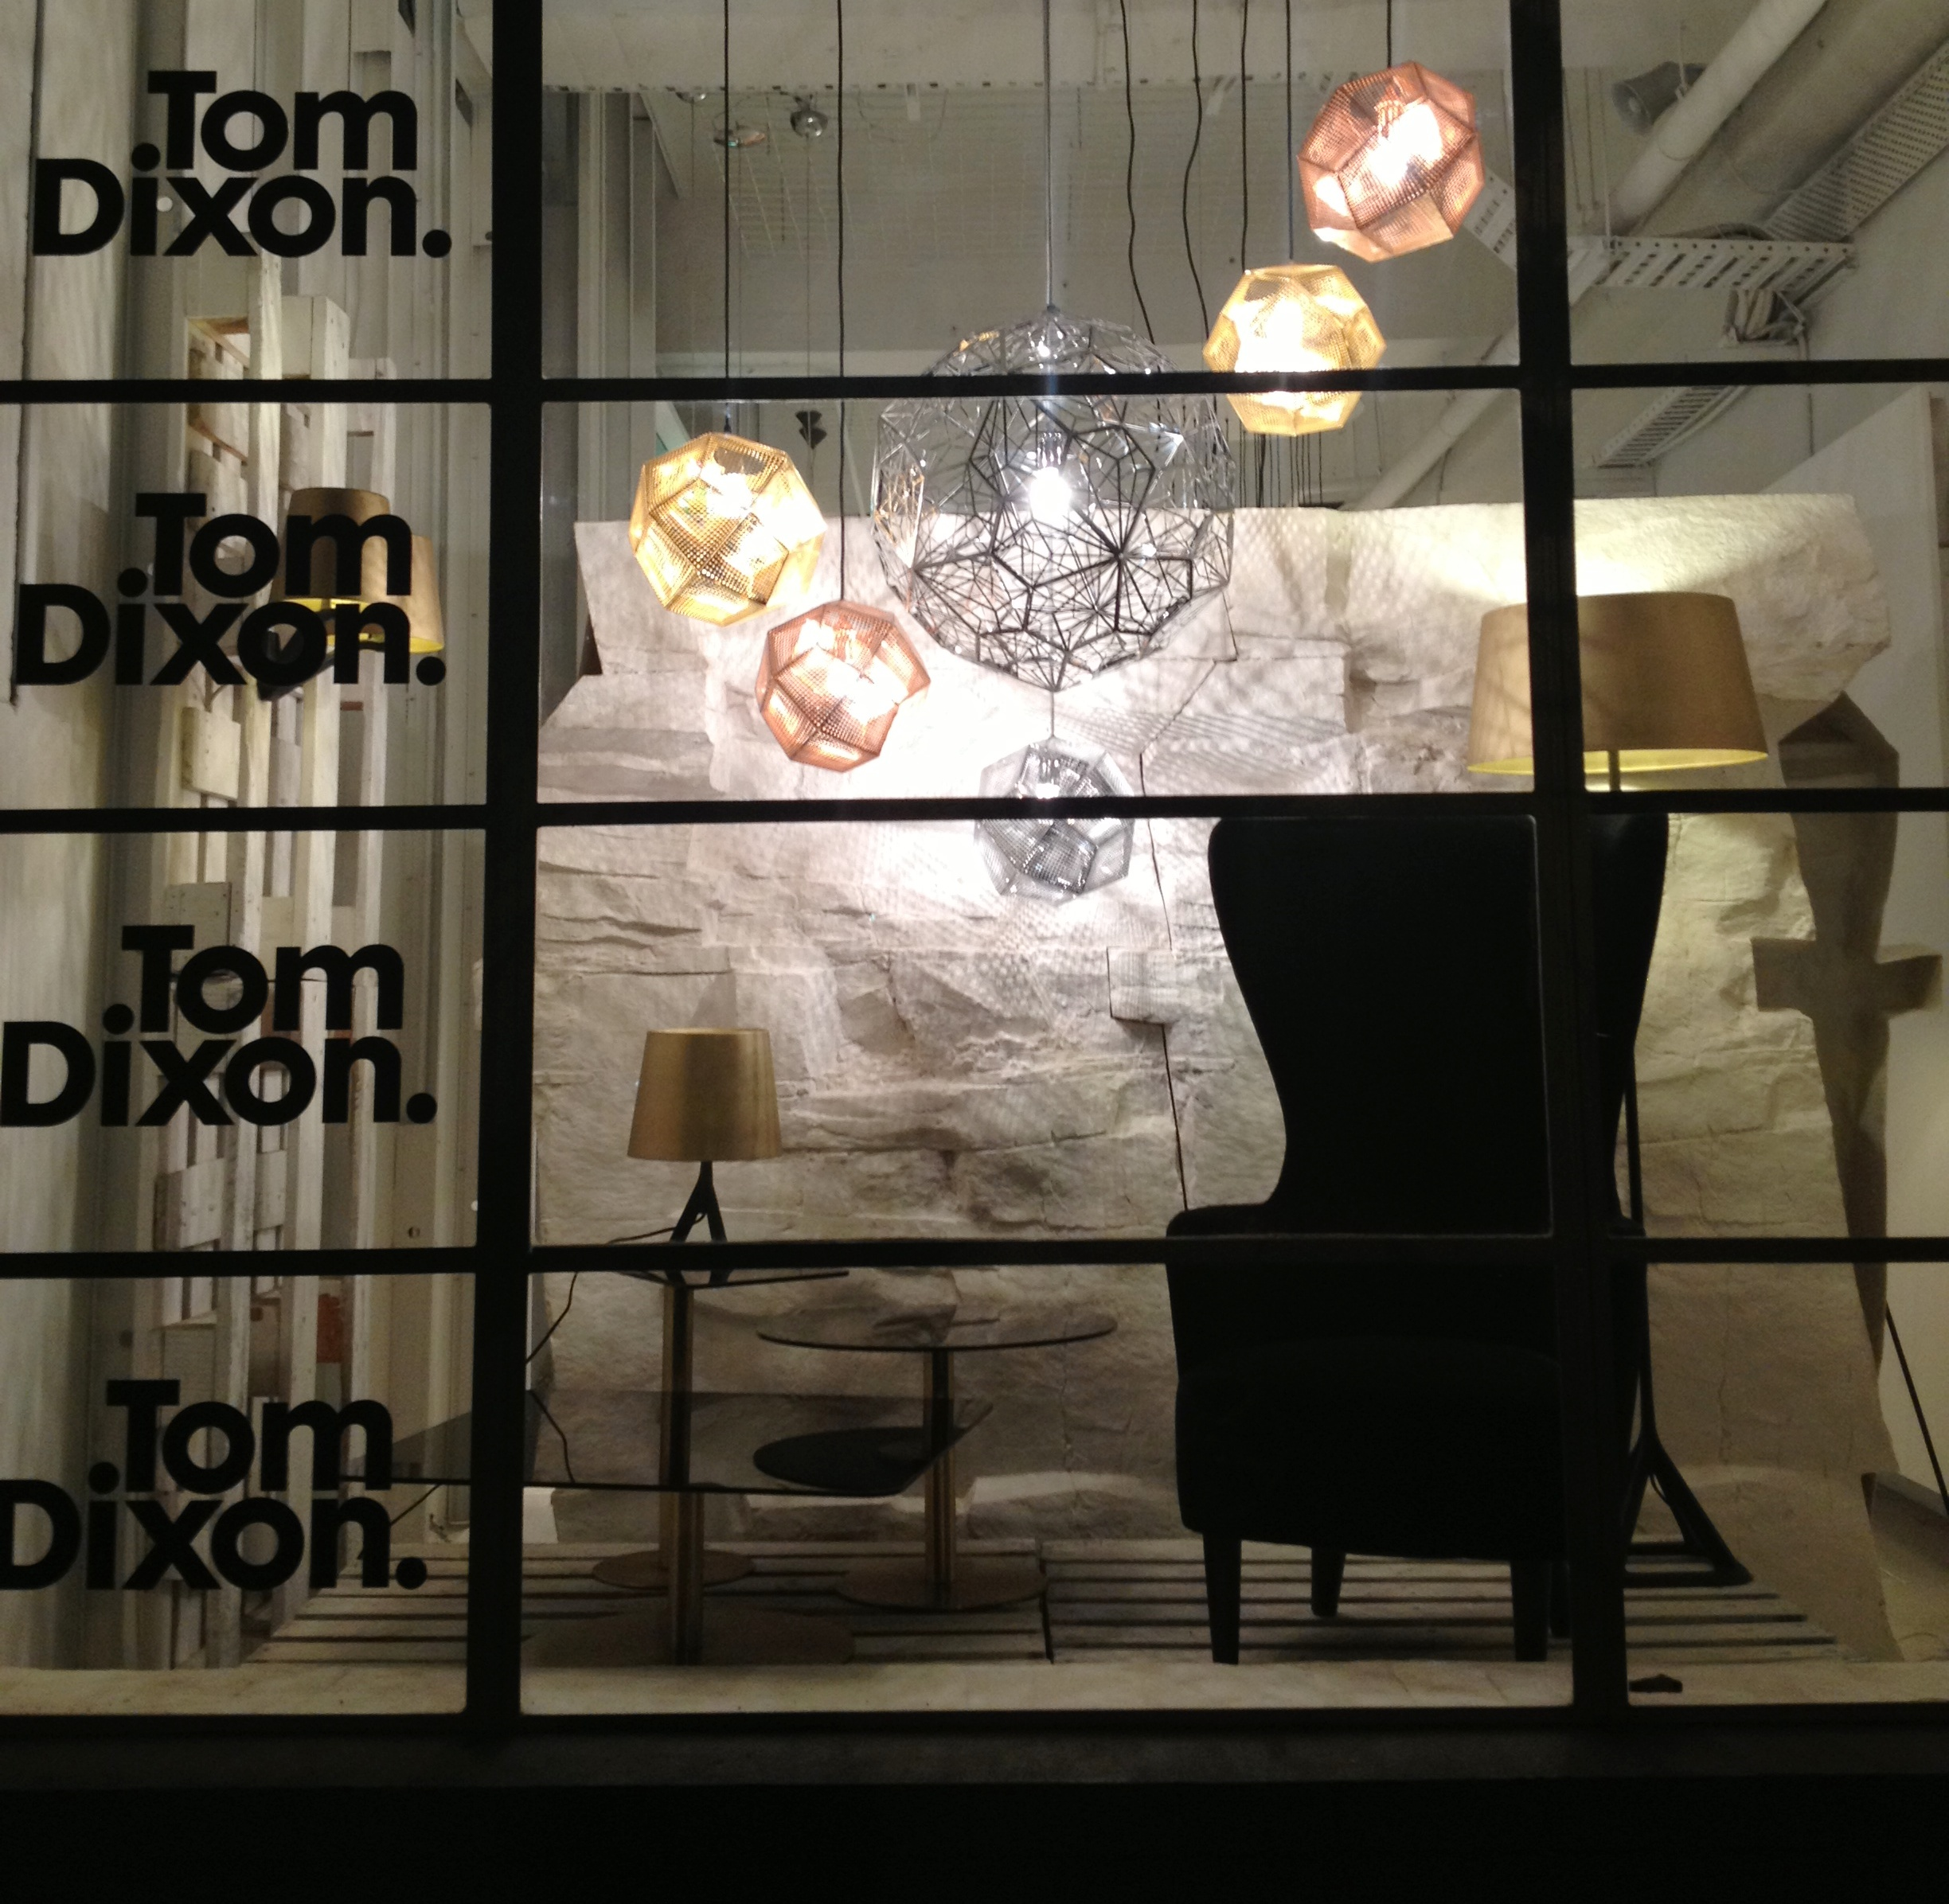 tom dixon window night